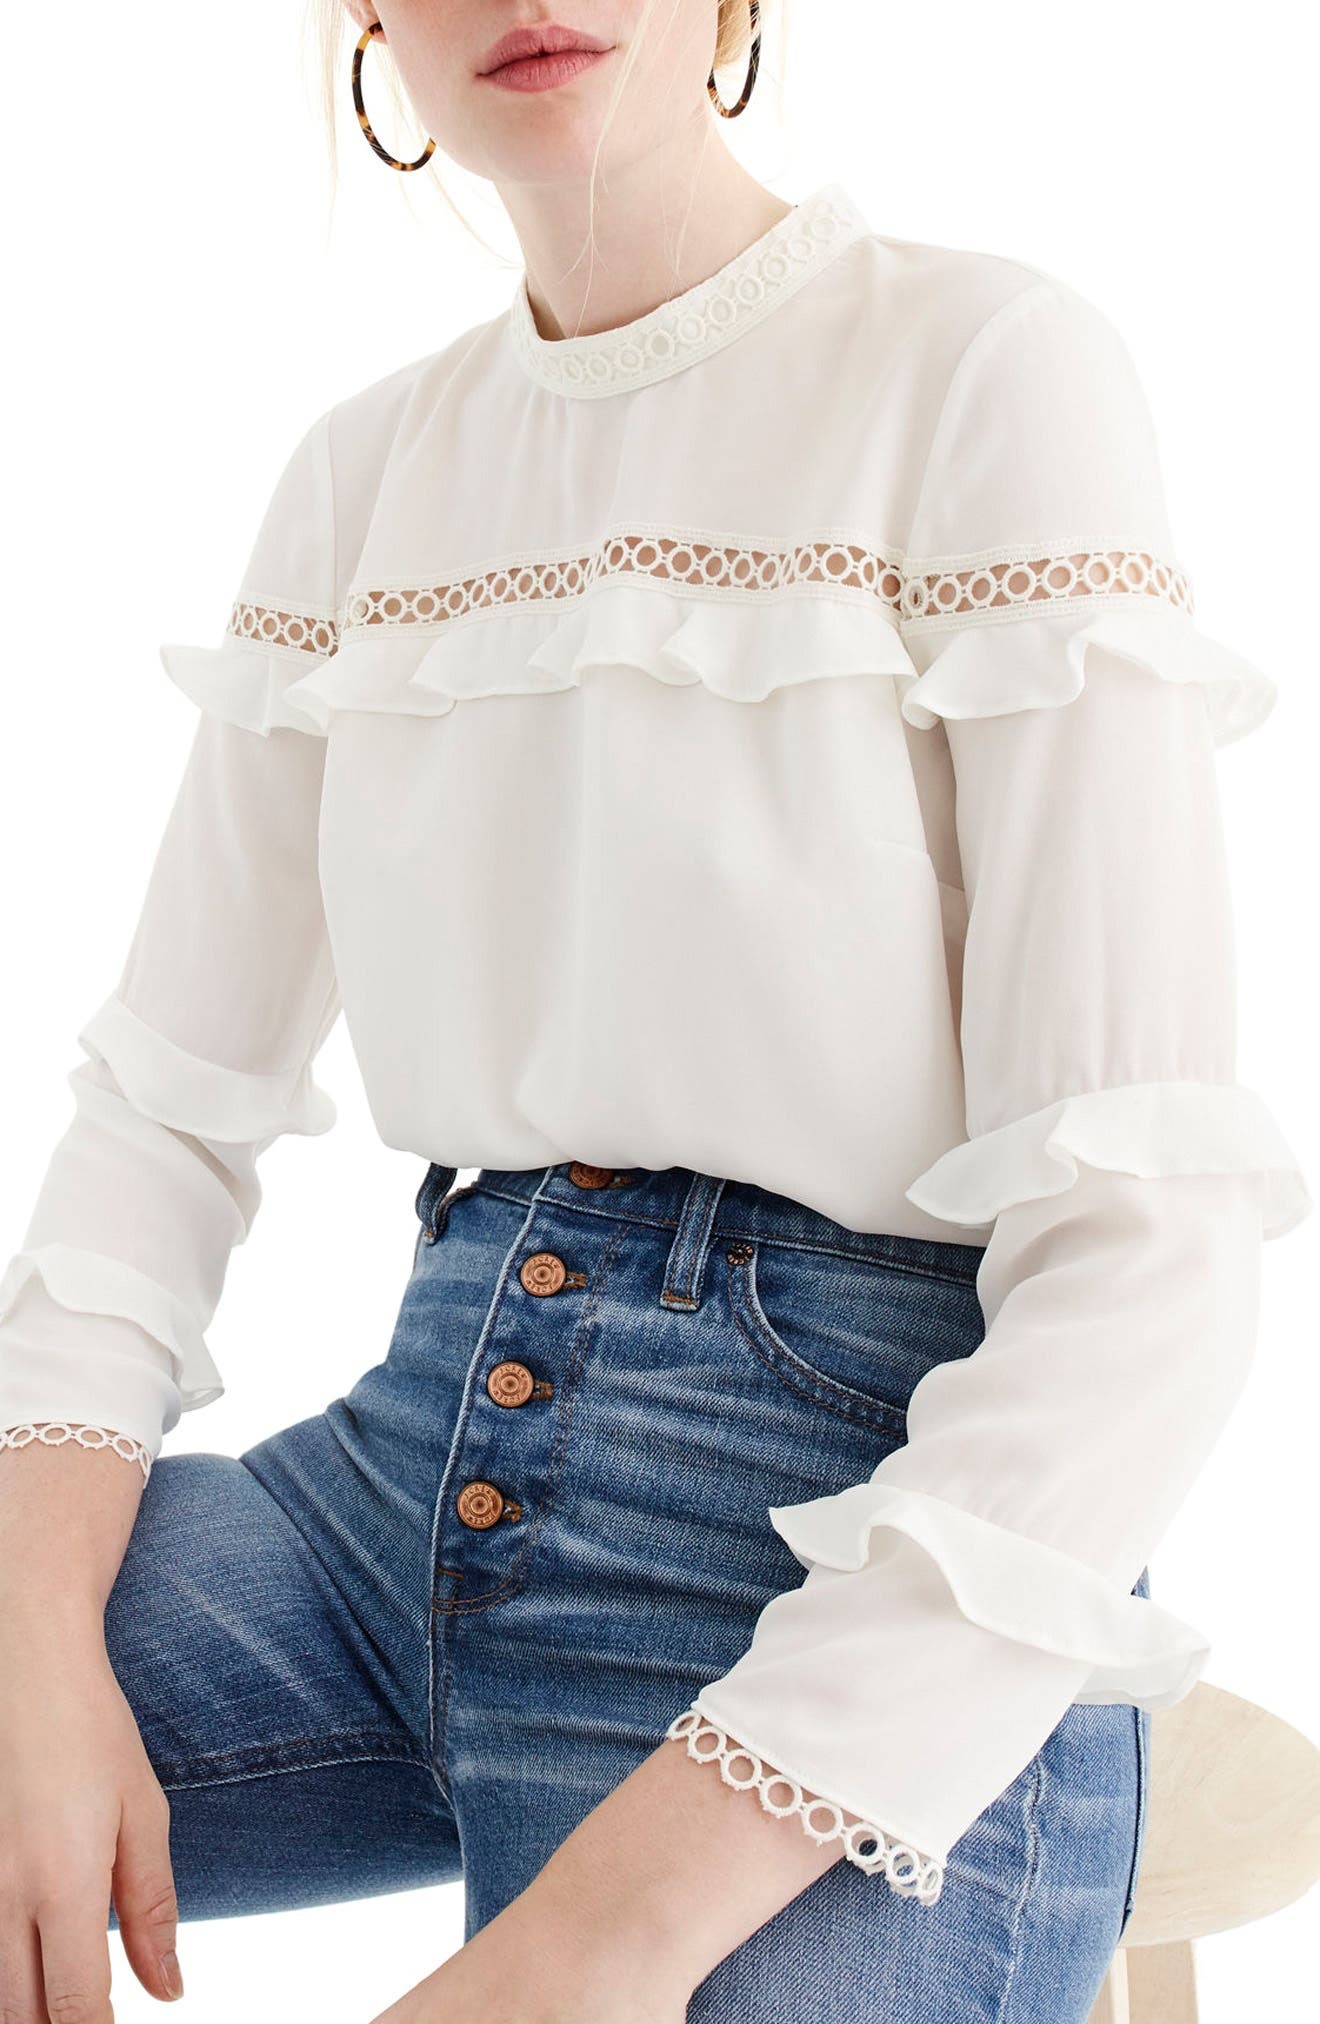 Alternate Image 1 Selected - J.Crew Tiered Ruffle Top with Scalloped Lace Trim